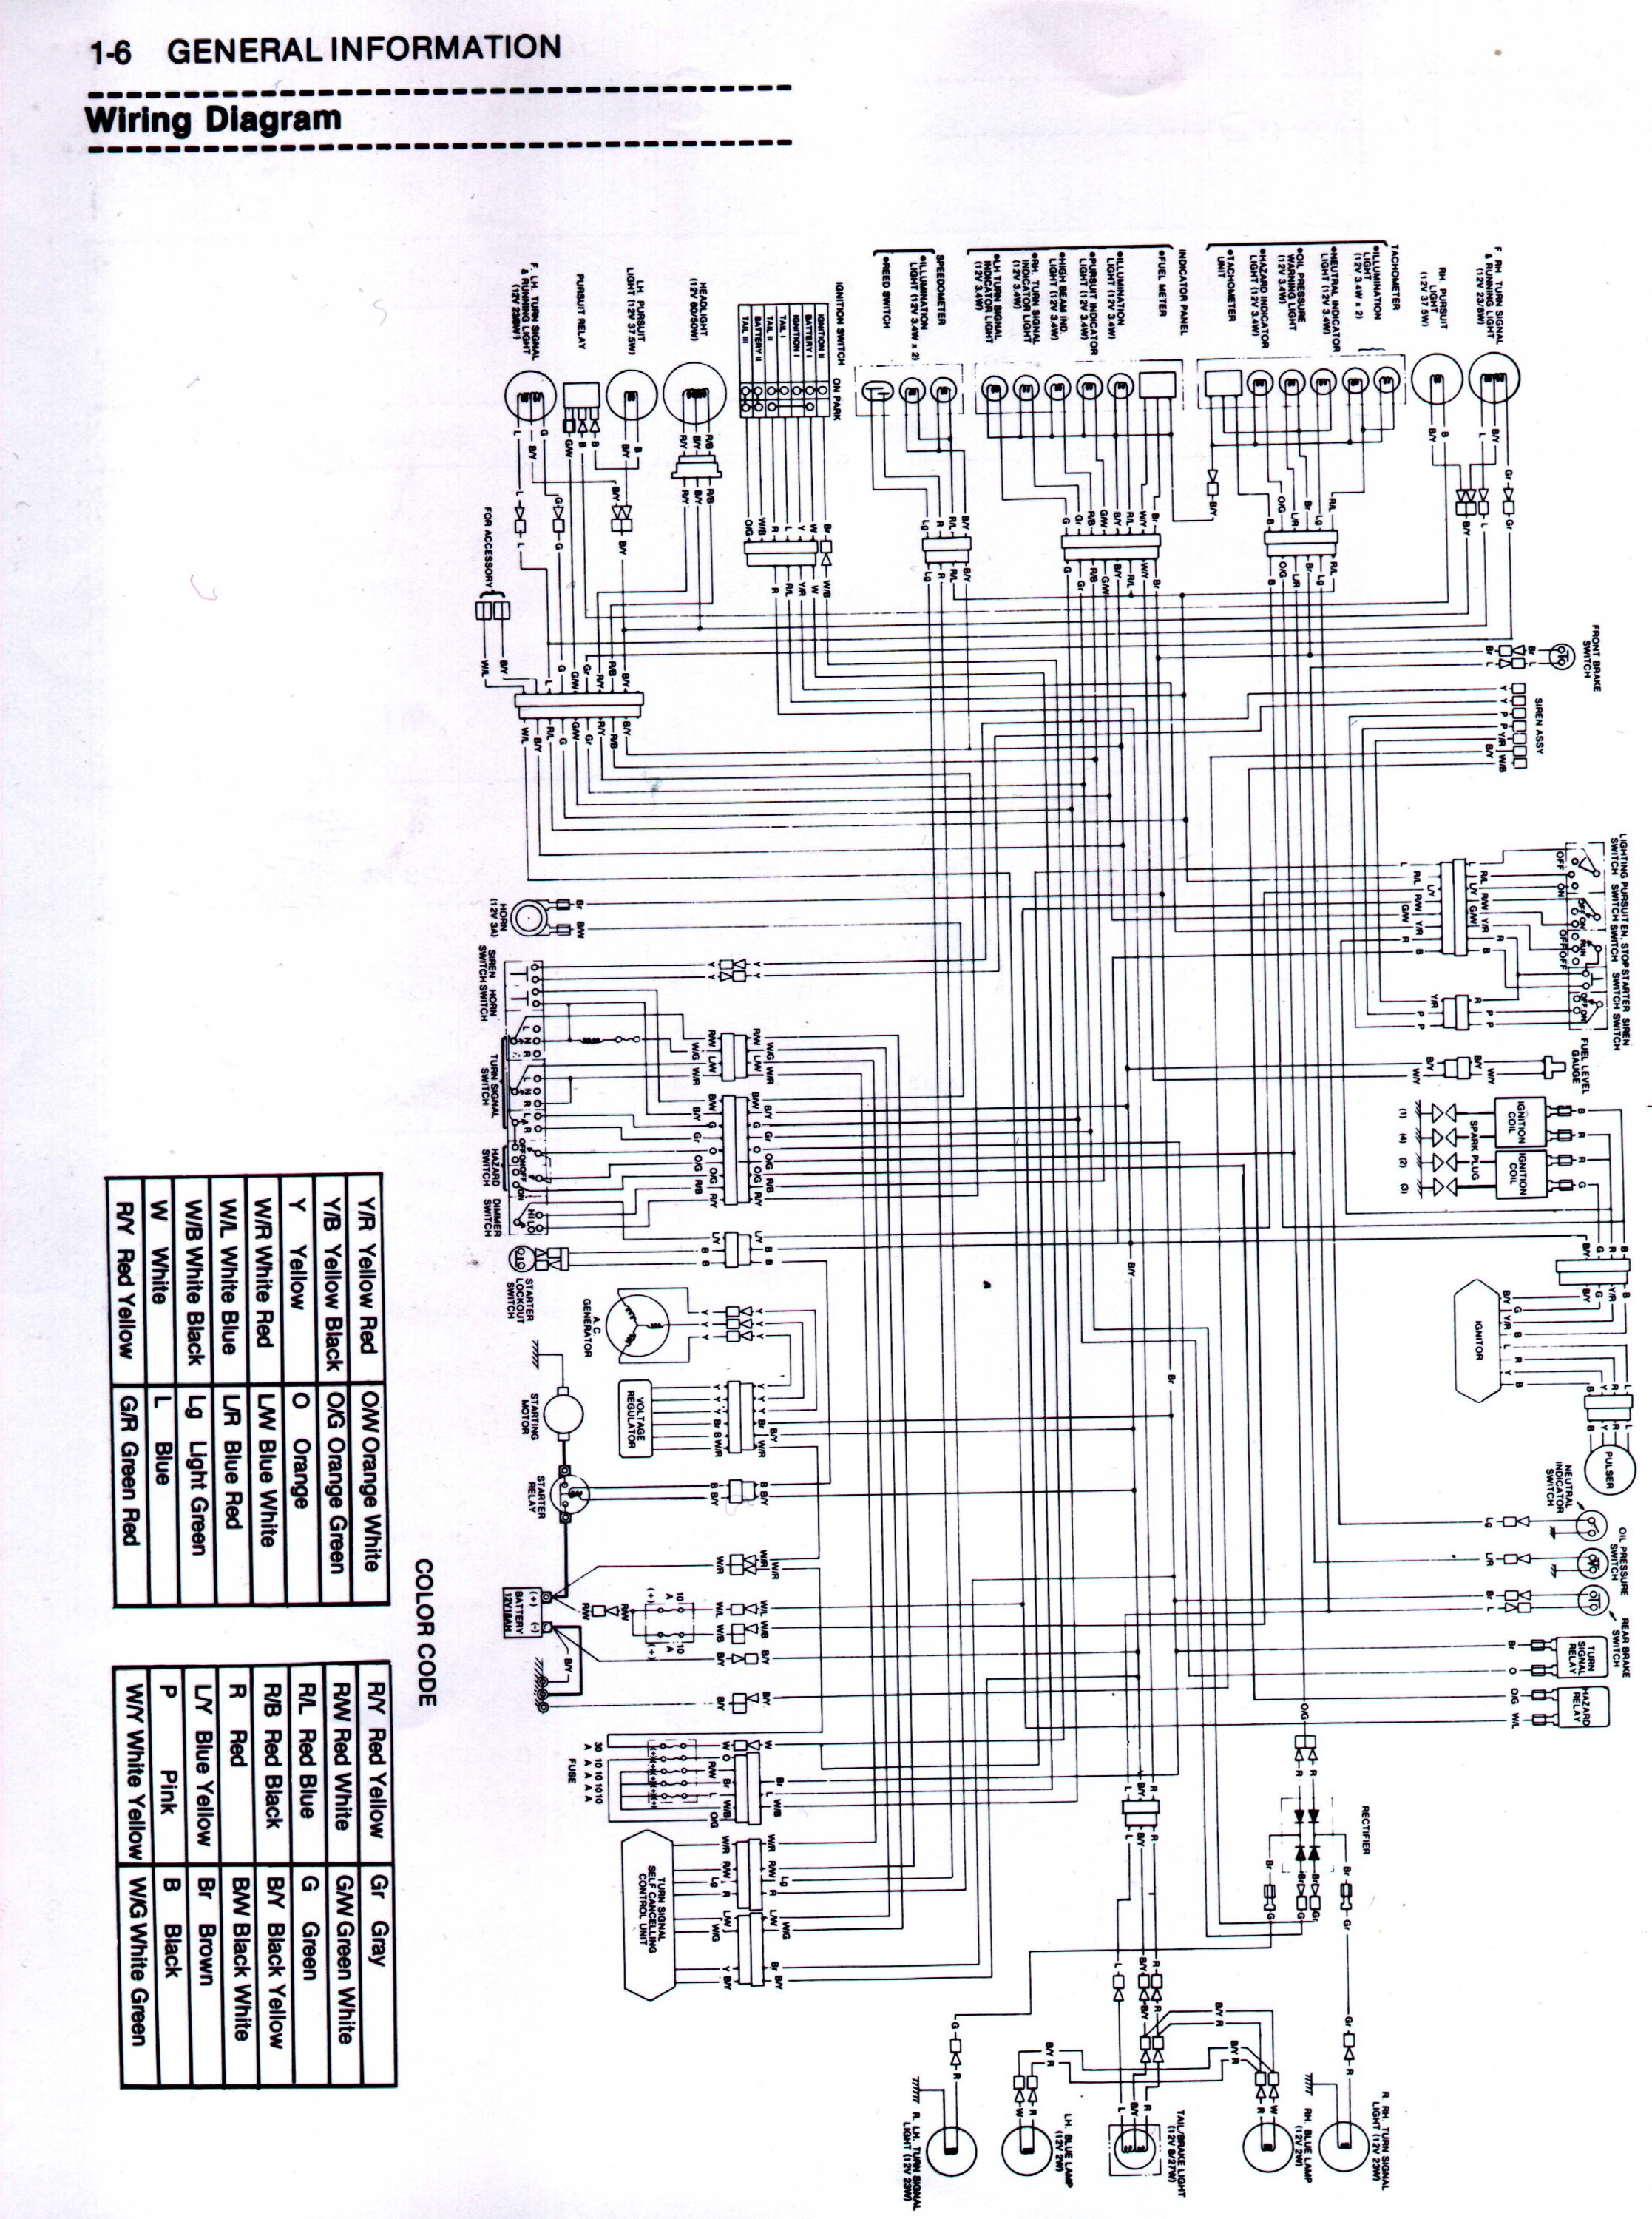 Cb650 Wiring Diagram Opinions About Schematic For A 1983 650 Nighthawk Experts Of U2022 Rh Evilcloud Co Uk 1979 1980 Cb